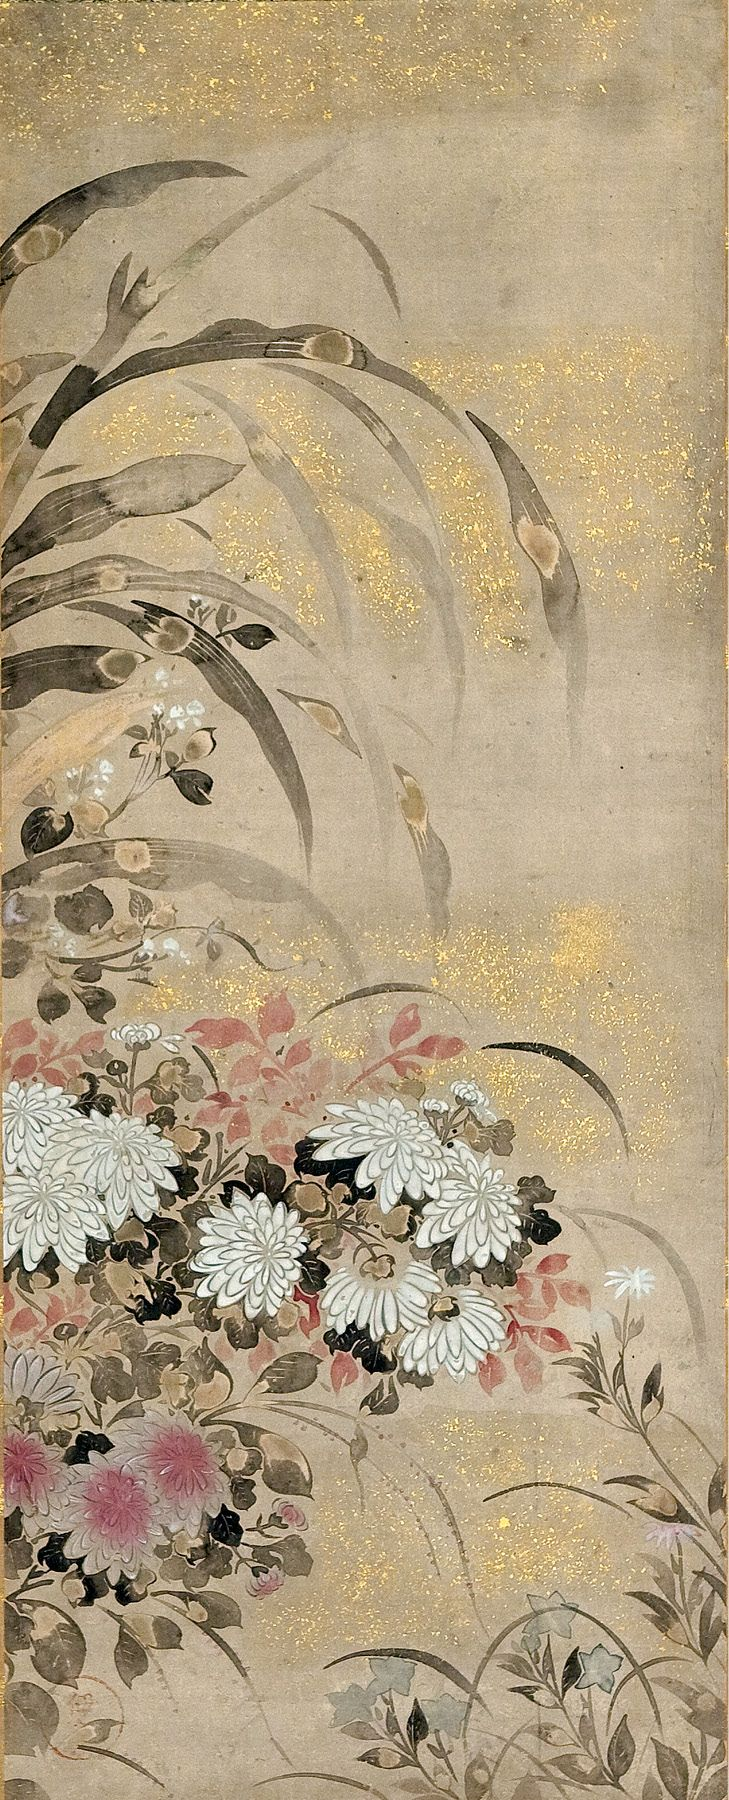 Burke Collection | Flowers of Autumn